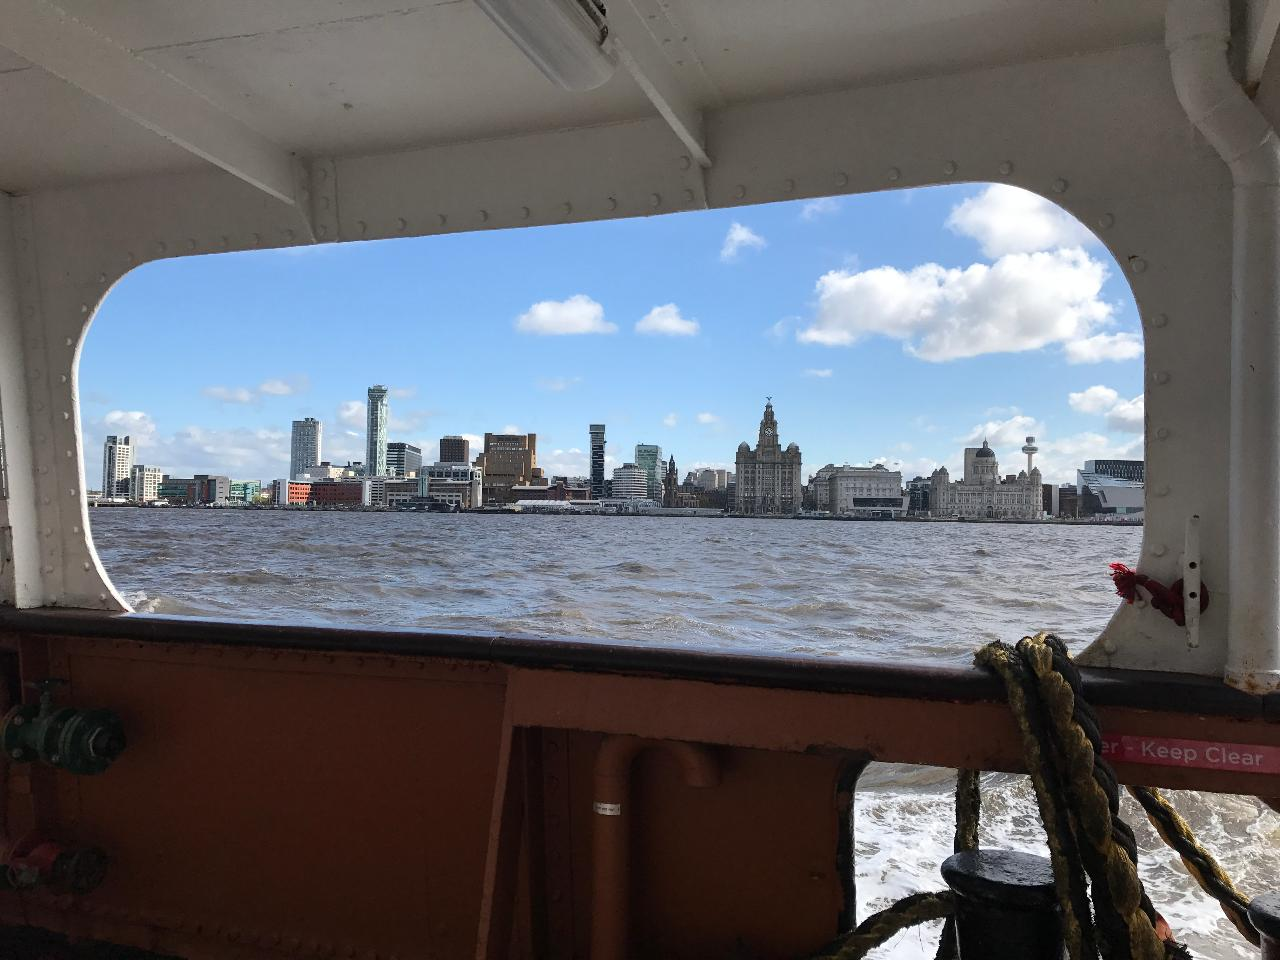 Liverpool Guided Beatles Walk, Cavern Club & River Cruise